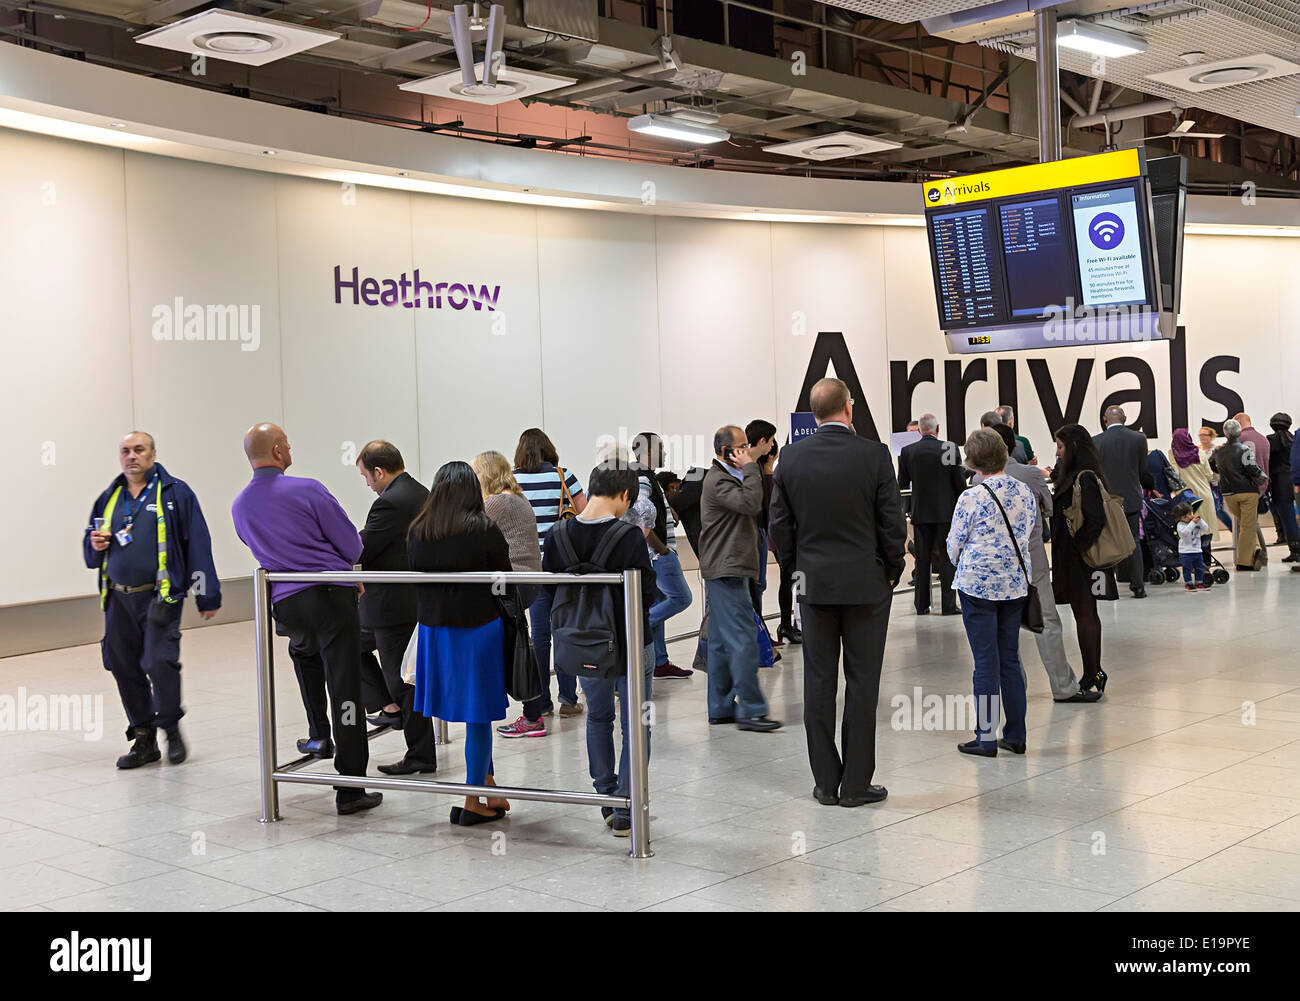 Heathrow airport arrivals concourse, London, England - Stock Image